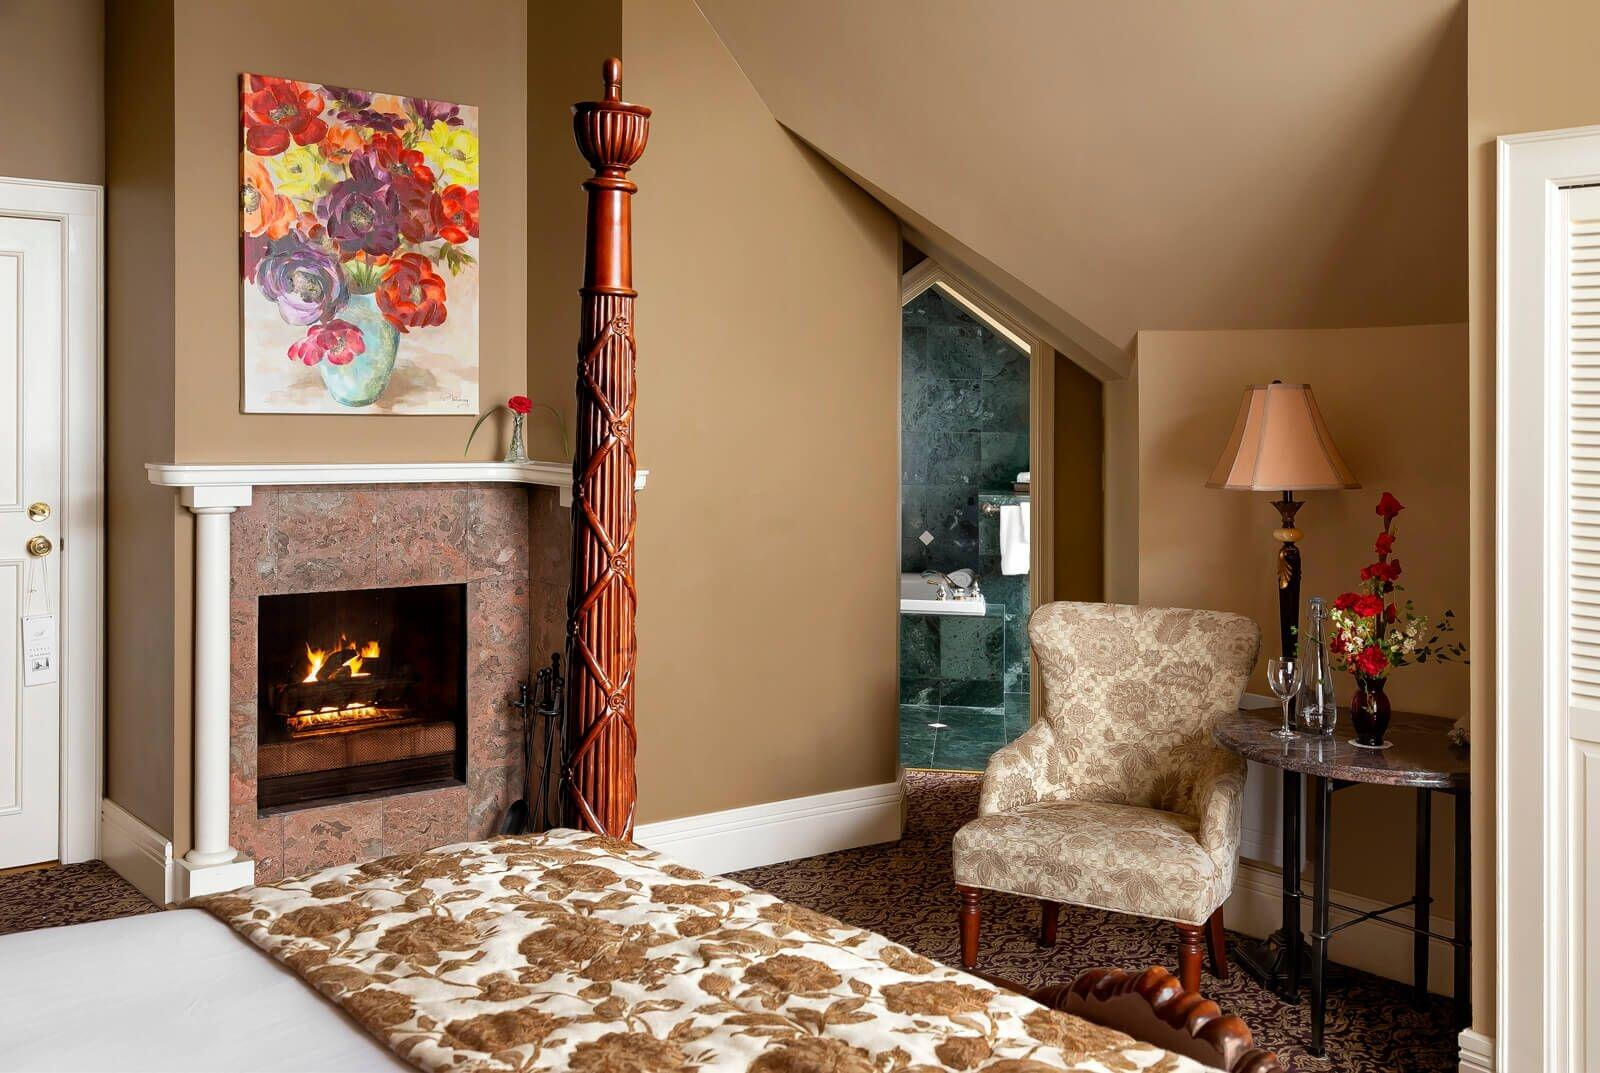 Four post bed with fire place and chair in corner